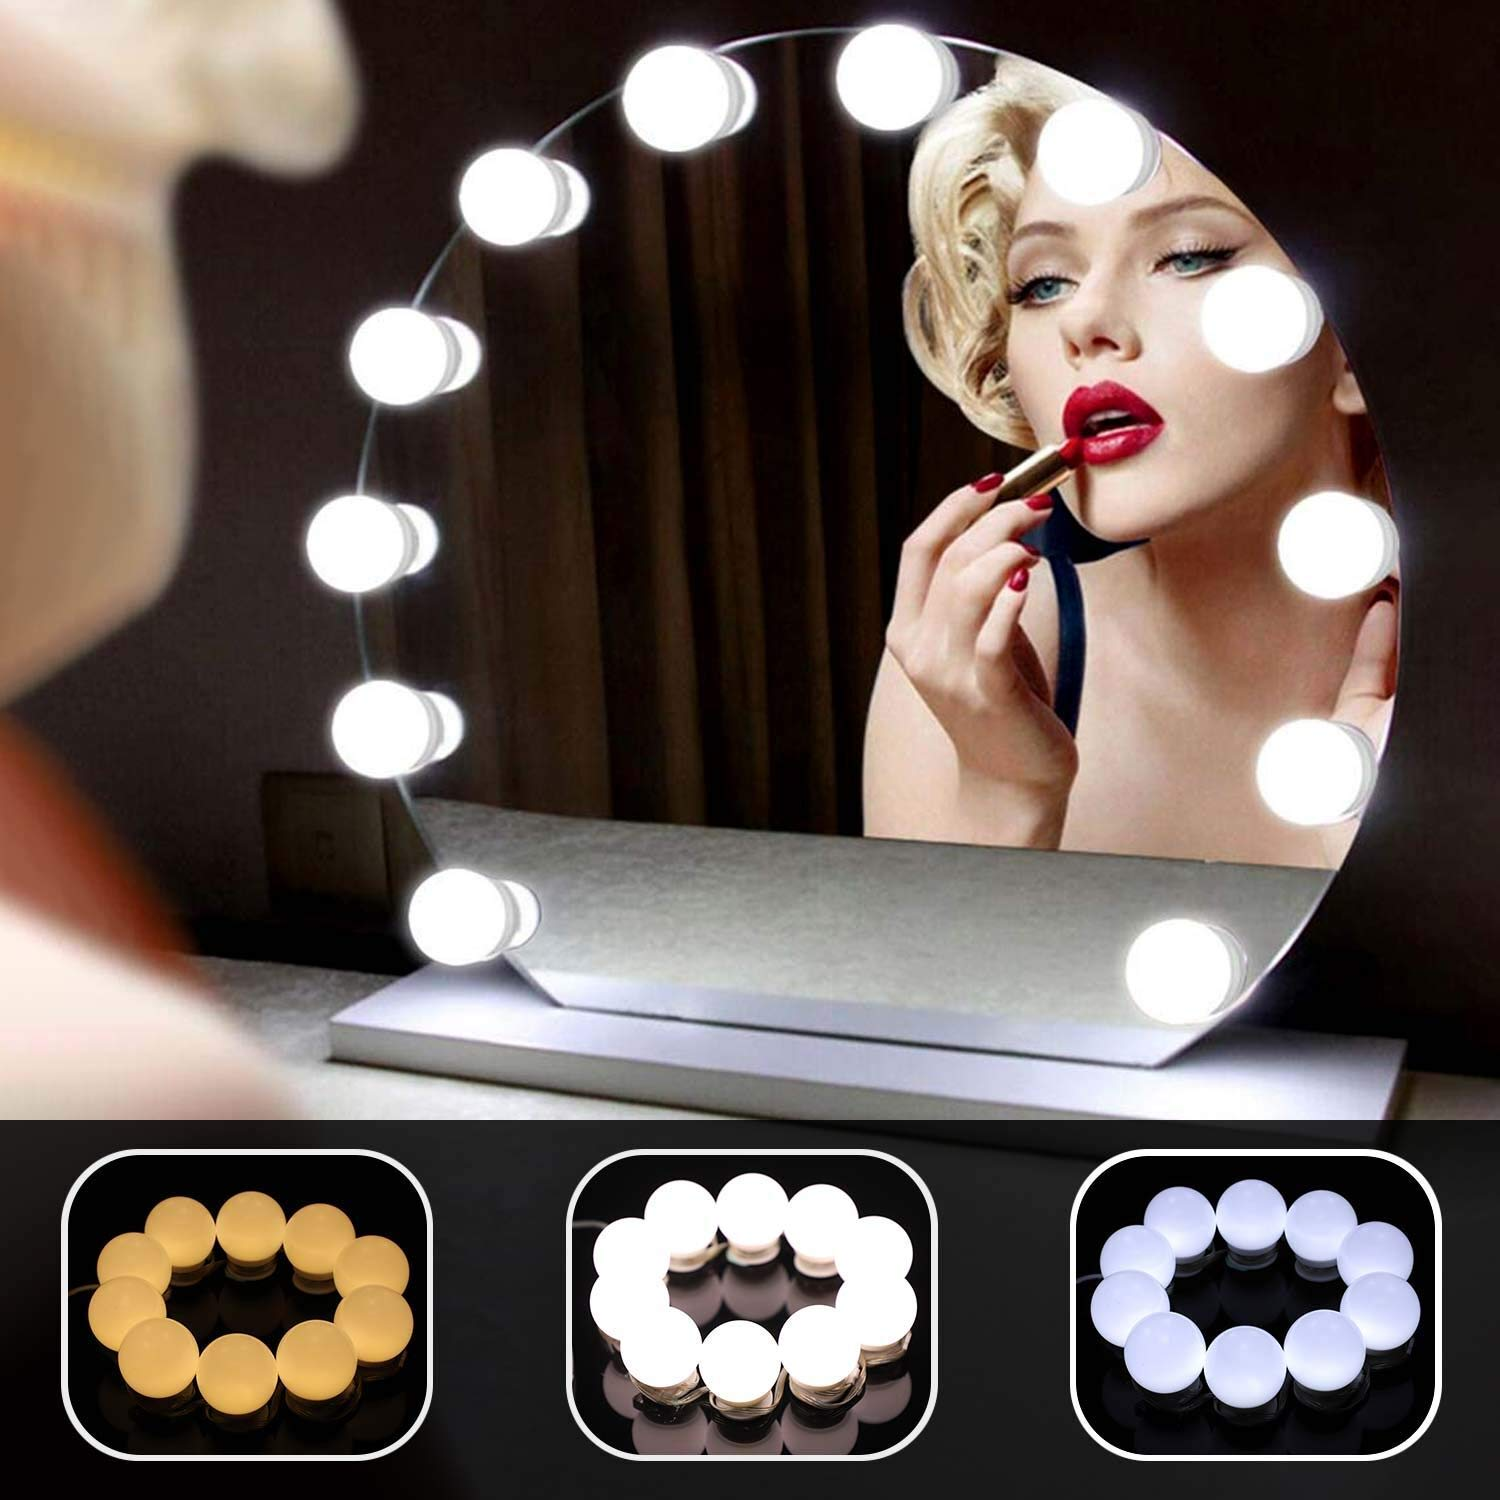 3.35M LED Makeup Lights with 10 Dimmable Light Bulbs Mirrors are not Included Perfect for Makeup Mirrors Dersoy Vanity Mirror Lights Kits Bathroom Lighting 3 Light Color Modes can be Adjusted